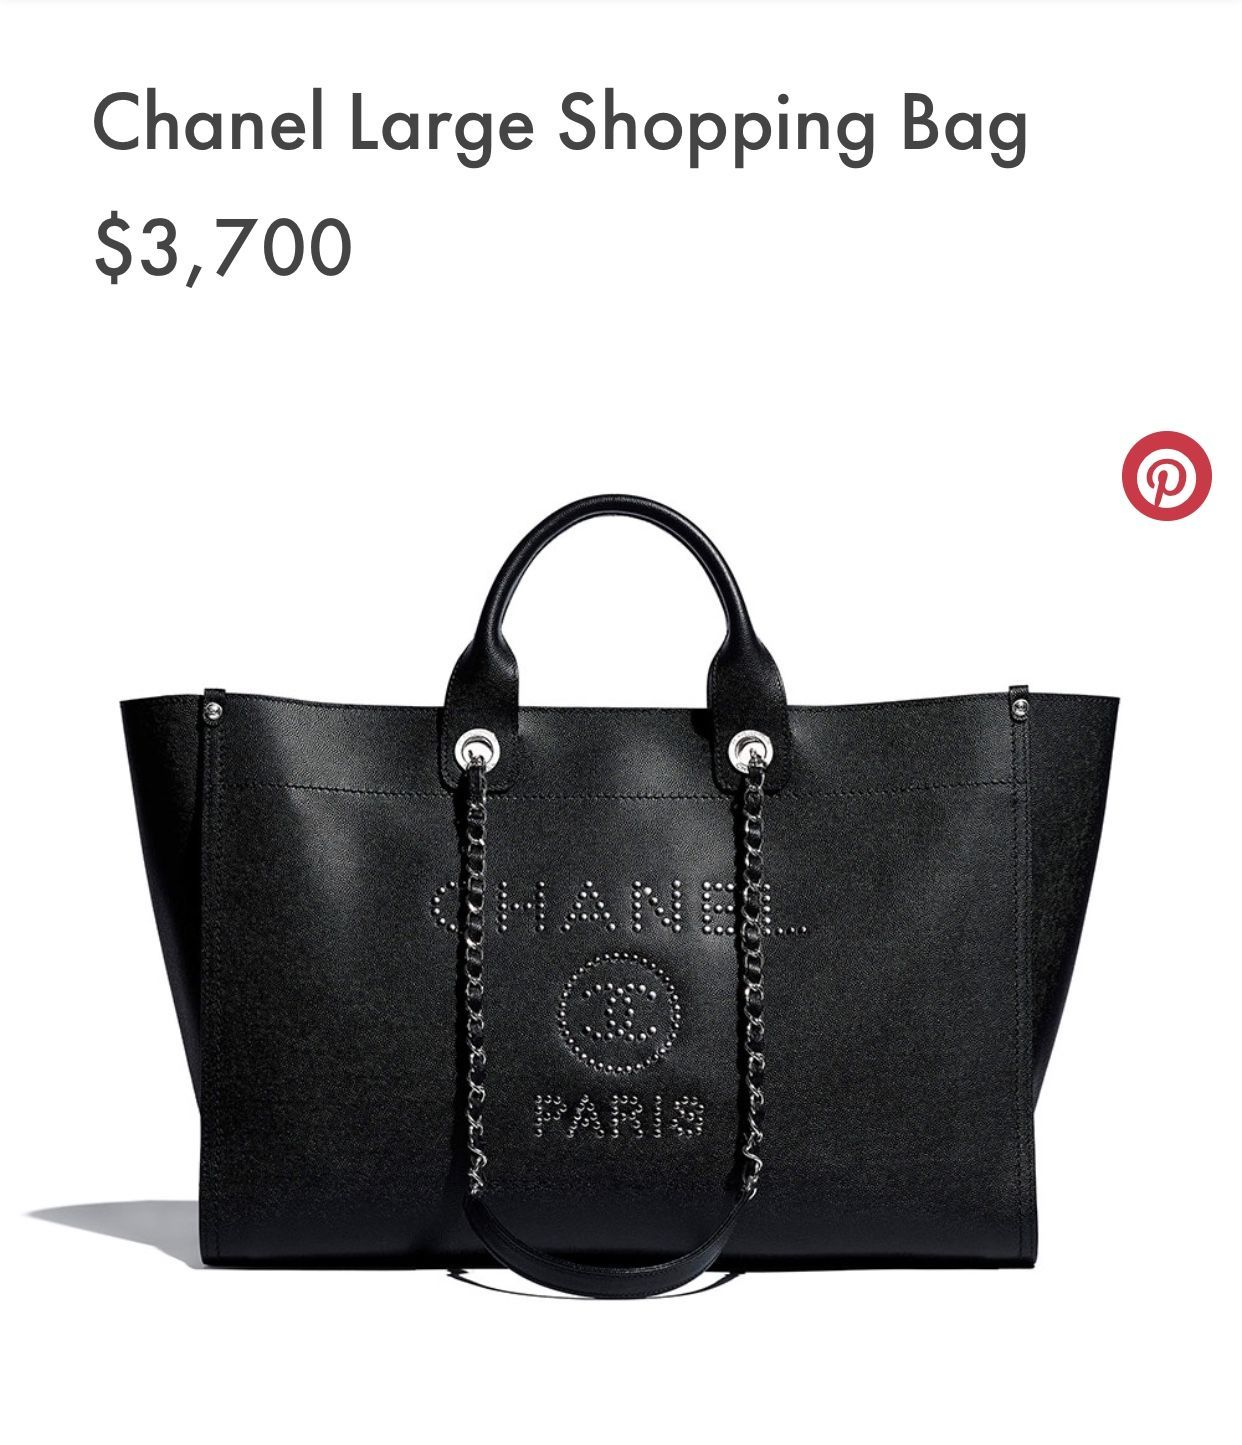 178cceb09 CHANEL - MAXI SHOPPING BAG